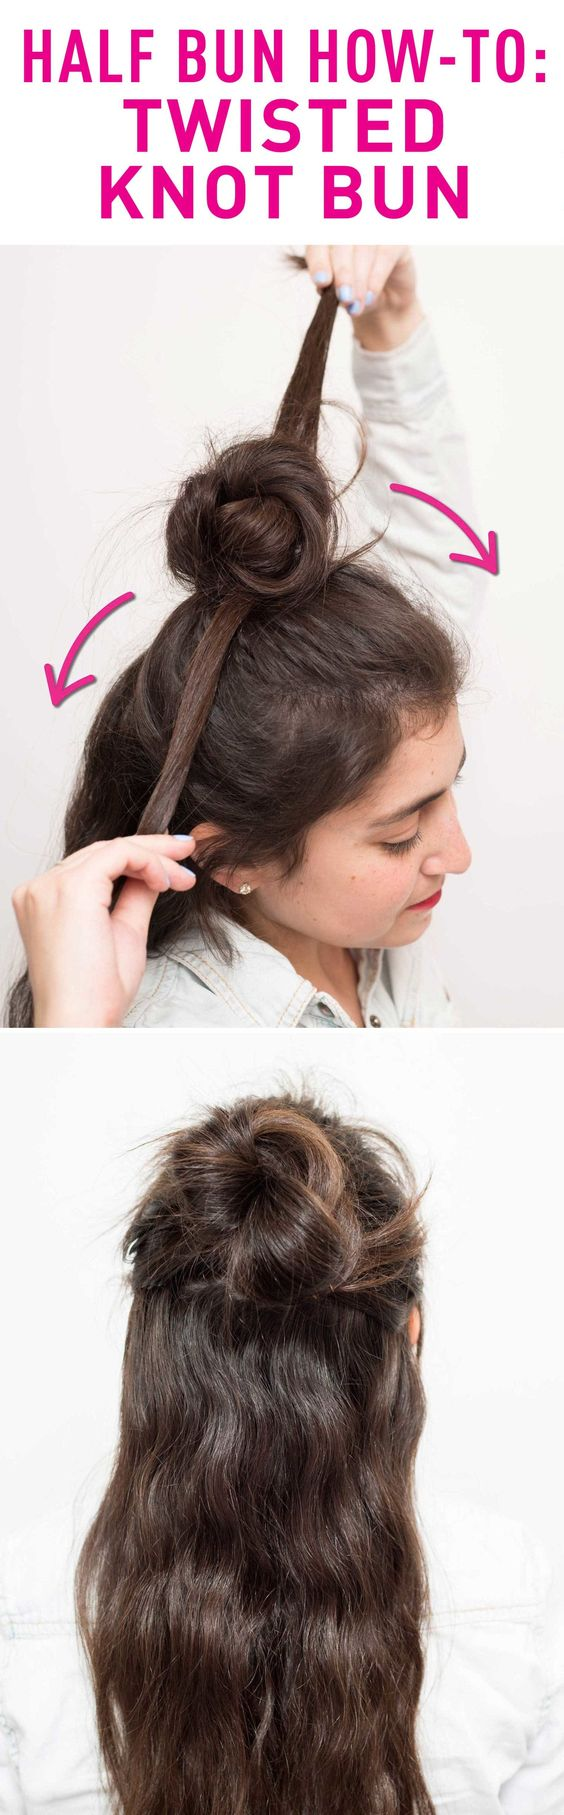 Top Twisted Knot Bun via